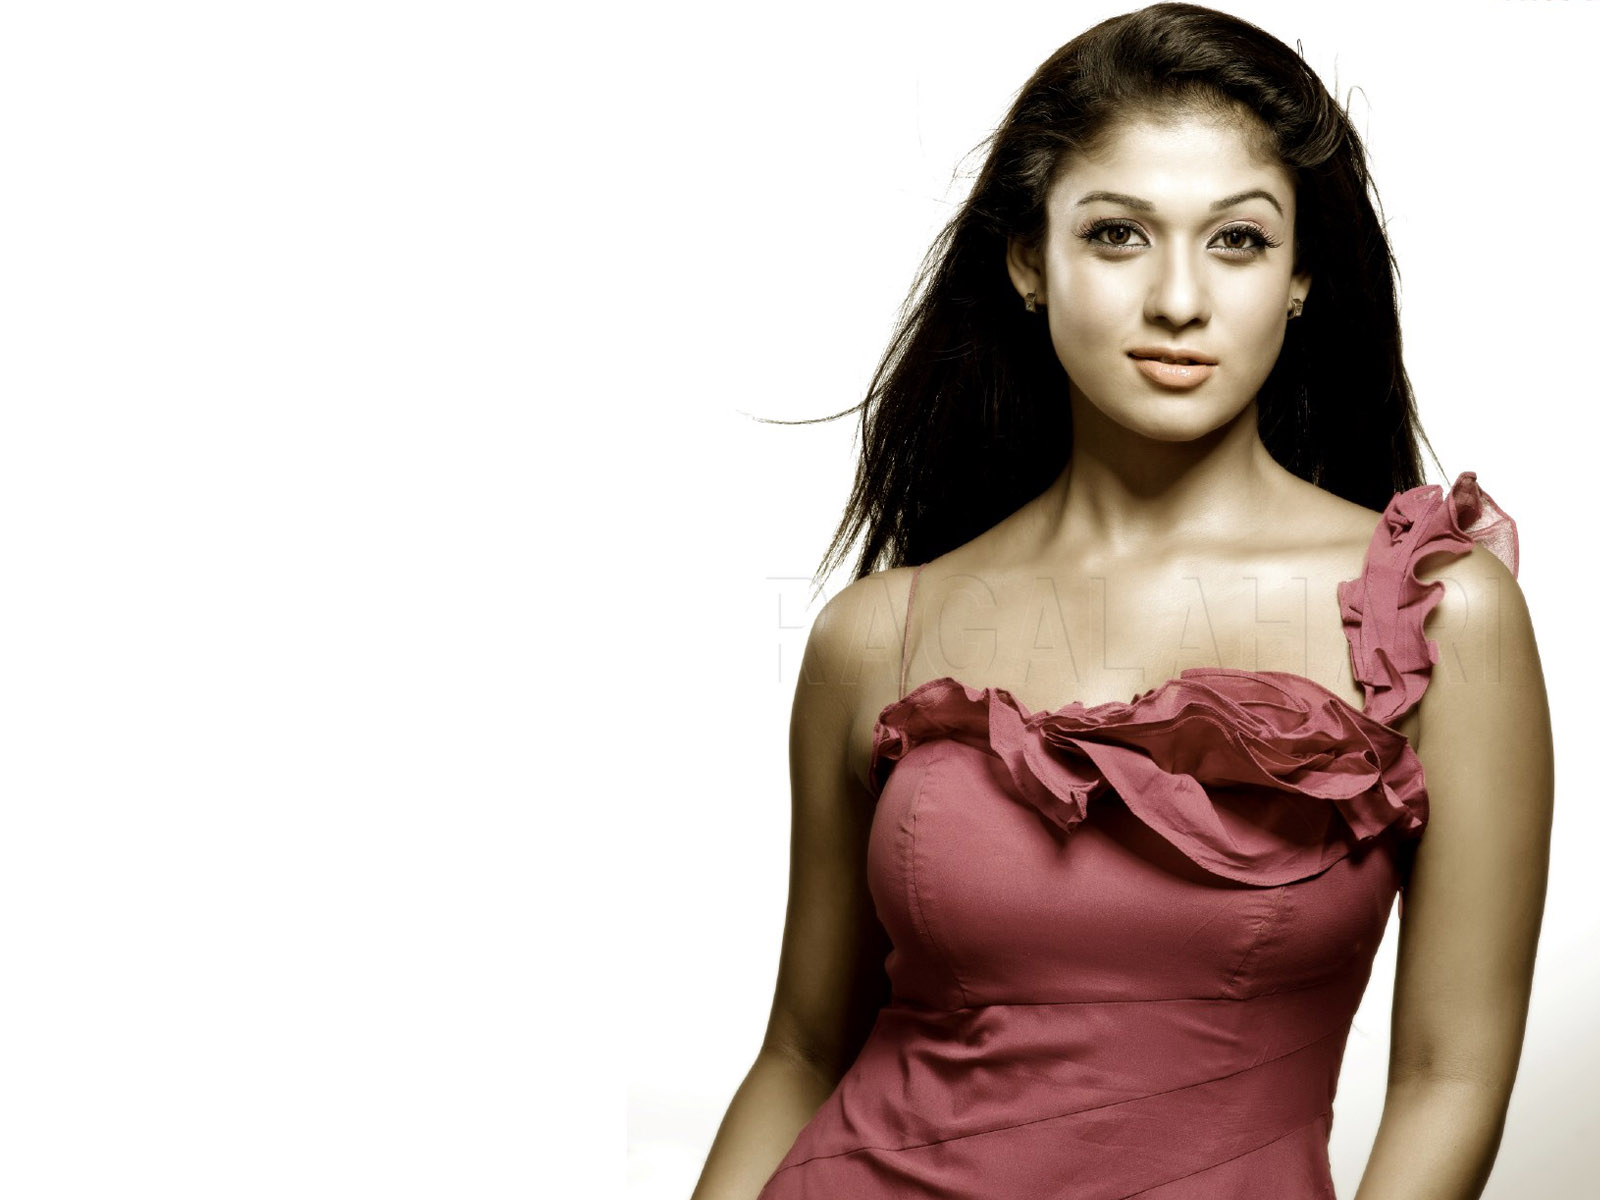 Nayantara High Quality 330.73 Kb